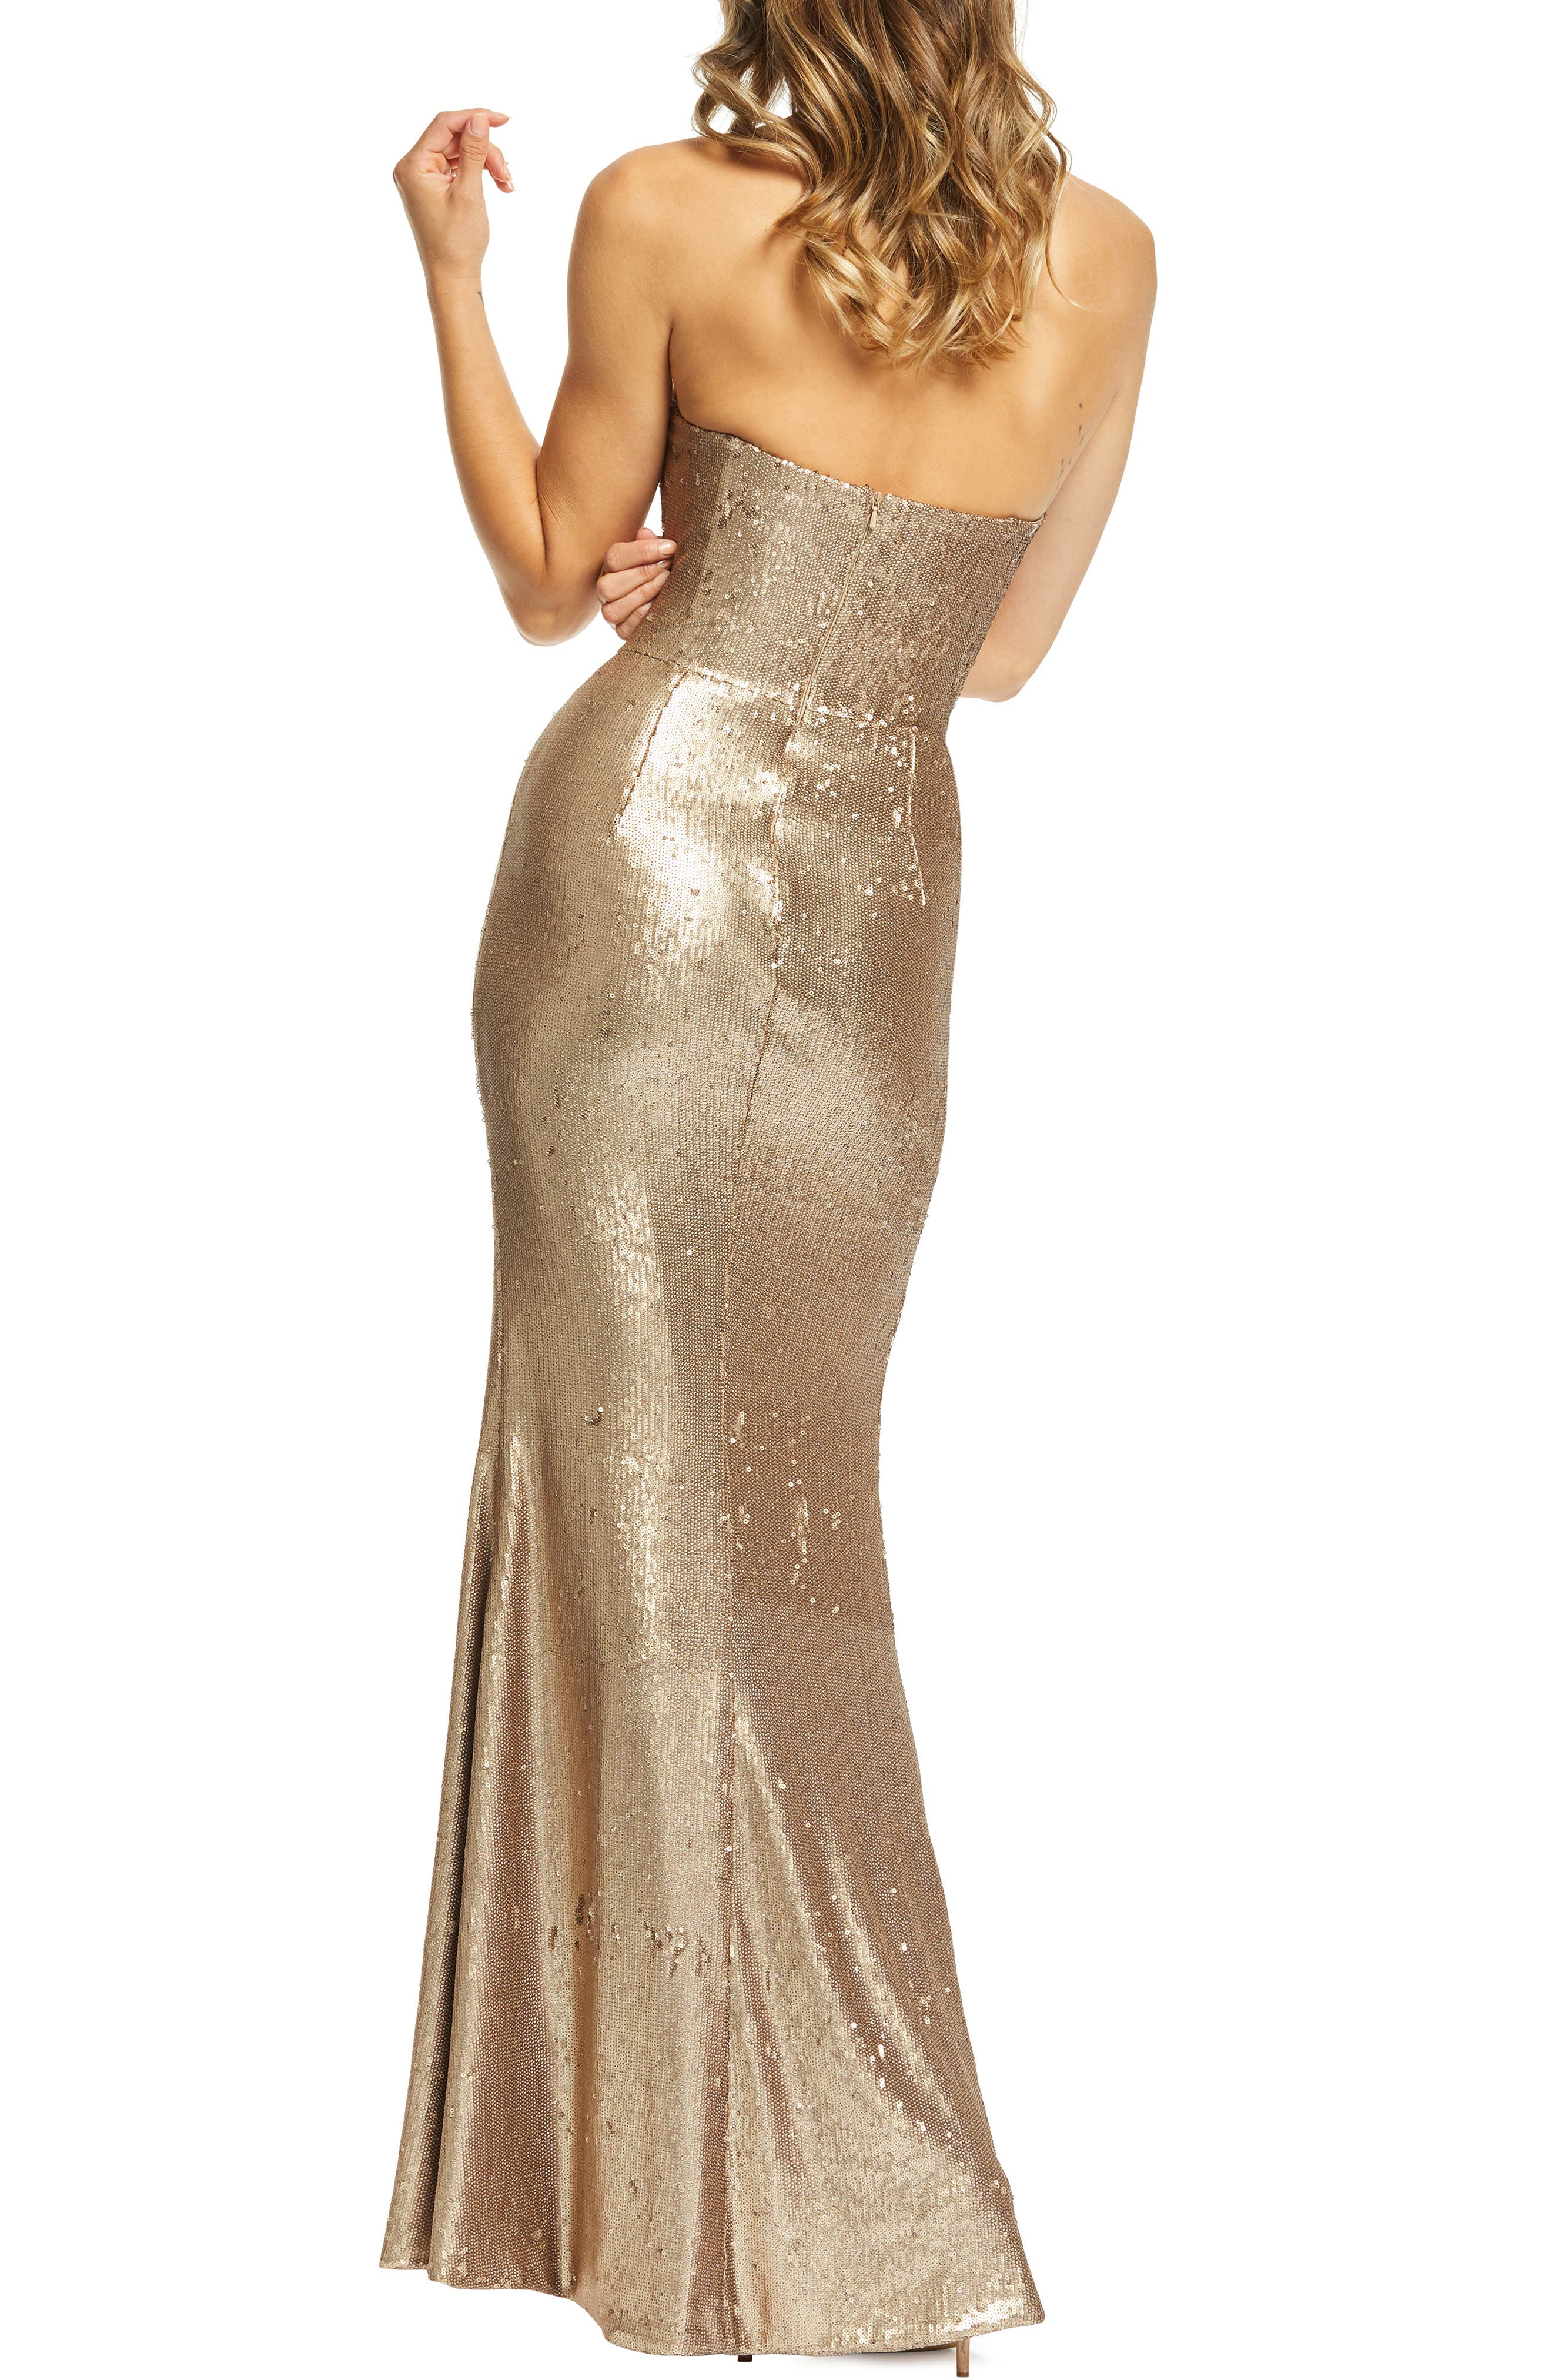 Bust 34 inlength 33 in : Gold Sequin Party Dress In stock Size XS Bridesmaids dress \u2013 ready to ship #1404 New Year/'s sequined dress